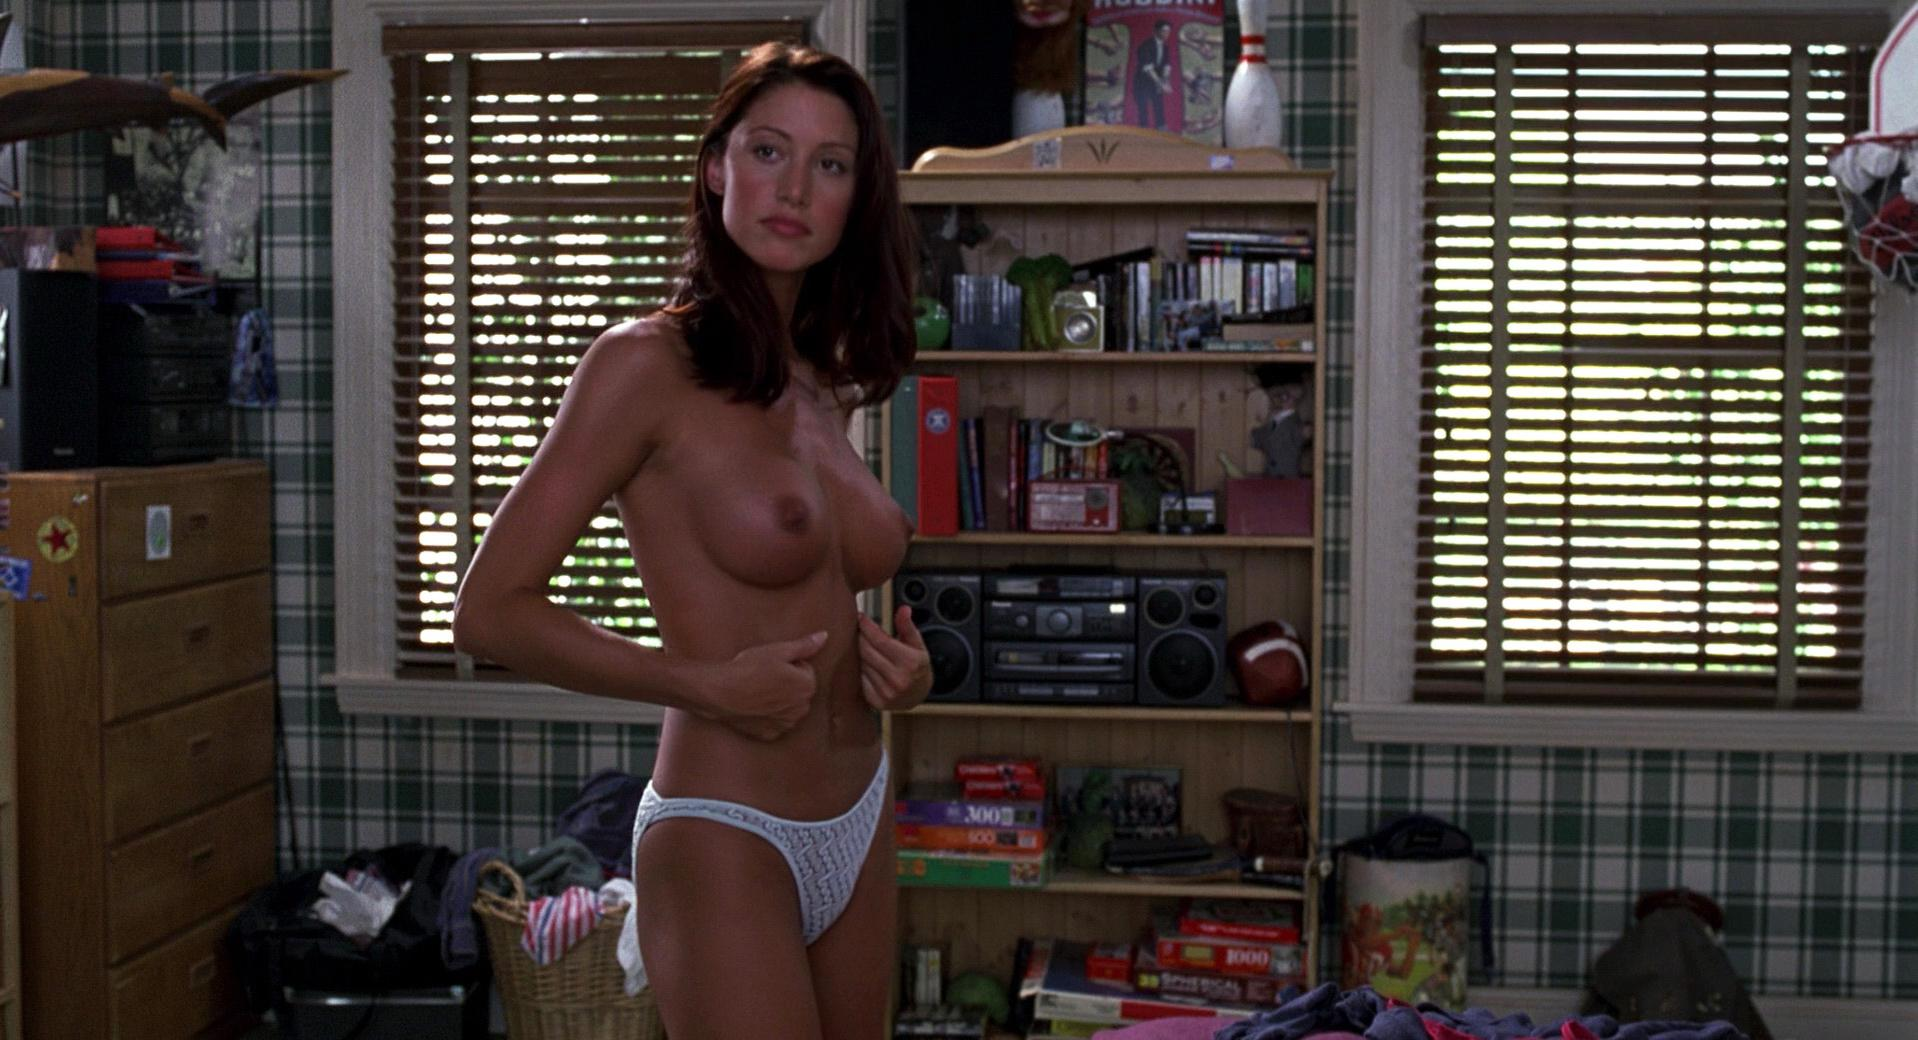 American Pie Uncensored Video nude video celebs » movie » american pie